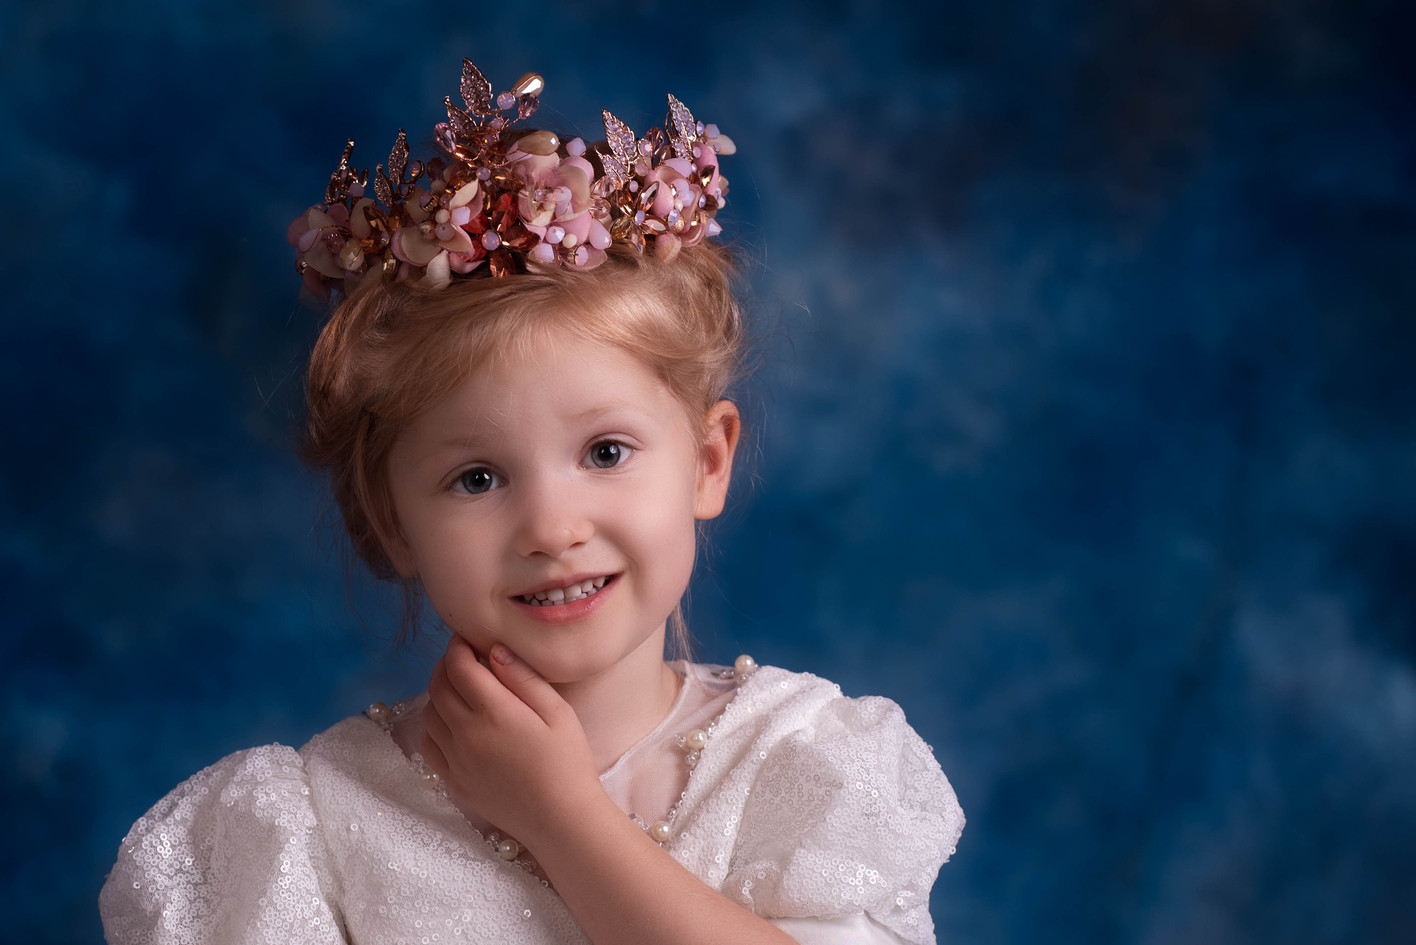 Sweet child picture with ornate crown